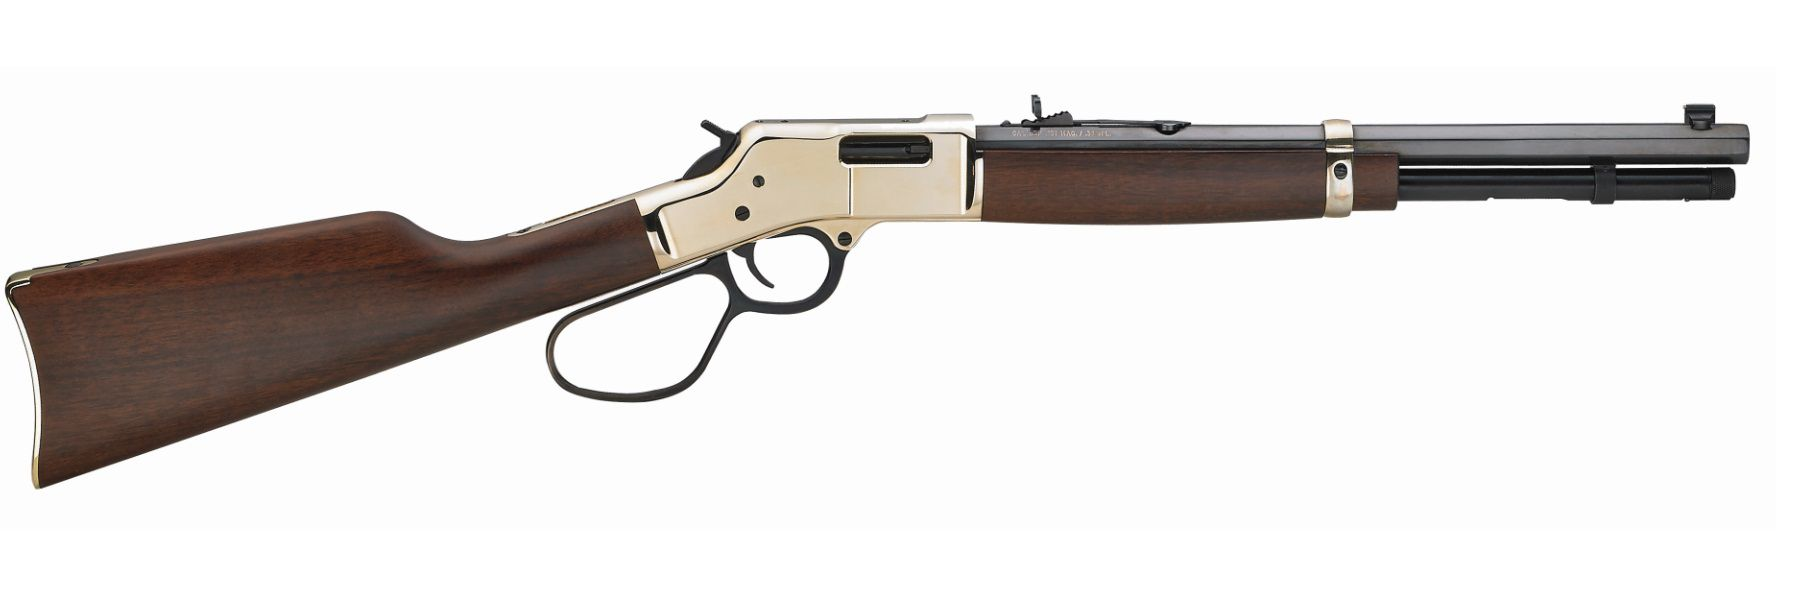 Henry Big Boy Carbine